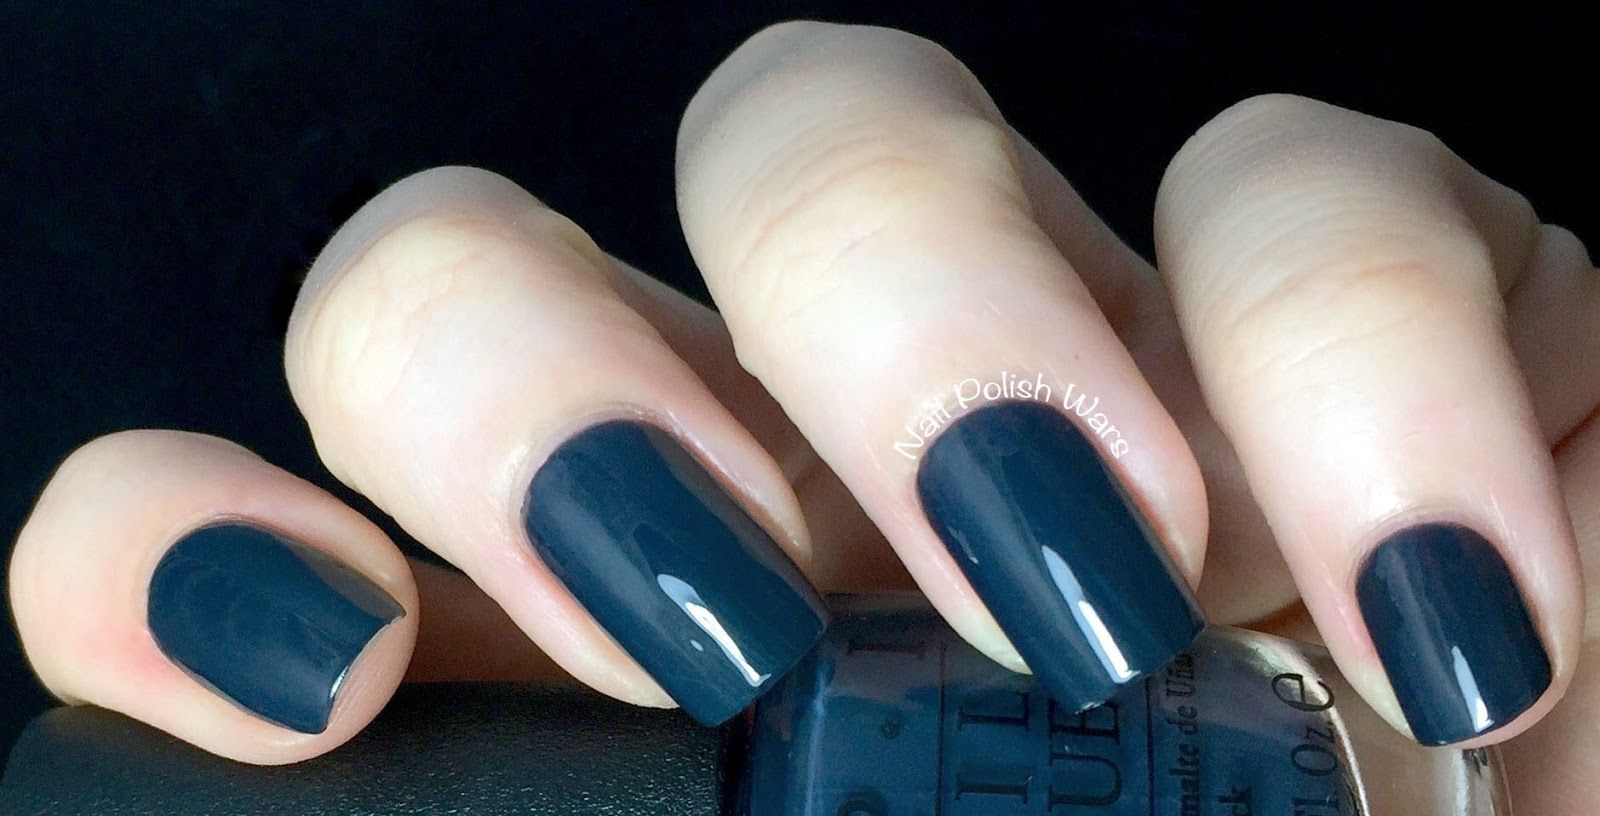 OPI - 50 Shades of Grey Collection Swatch | Nails | Pinterest ...